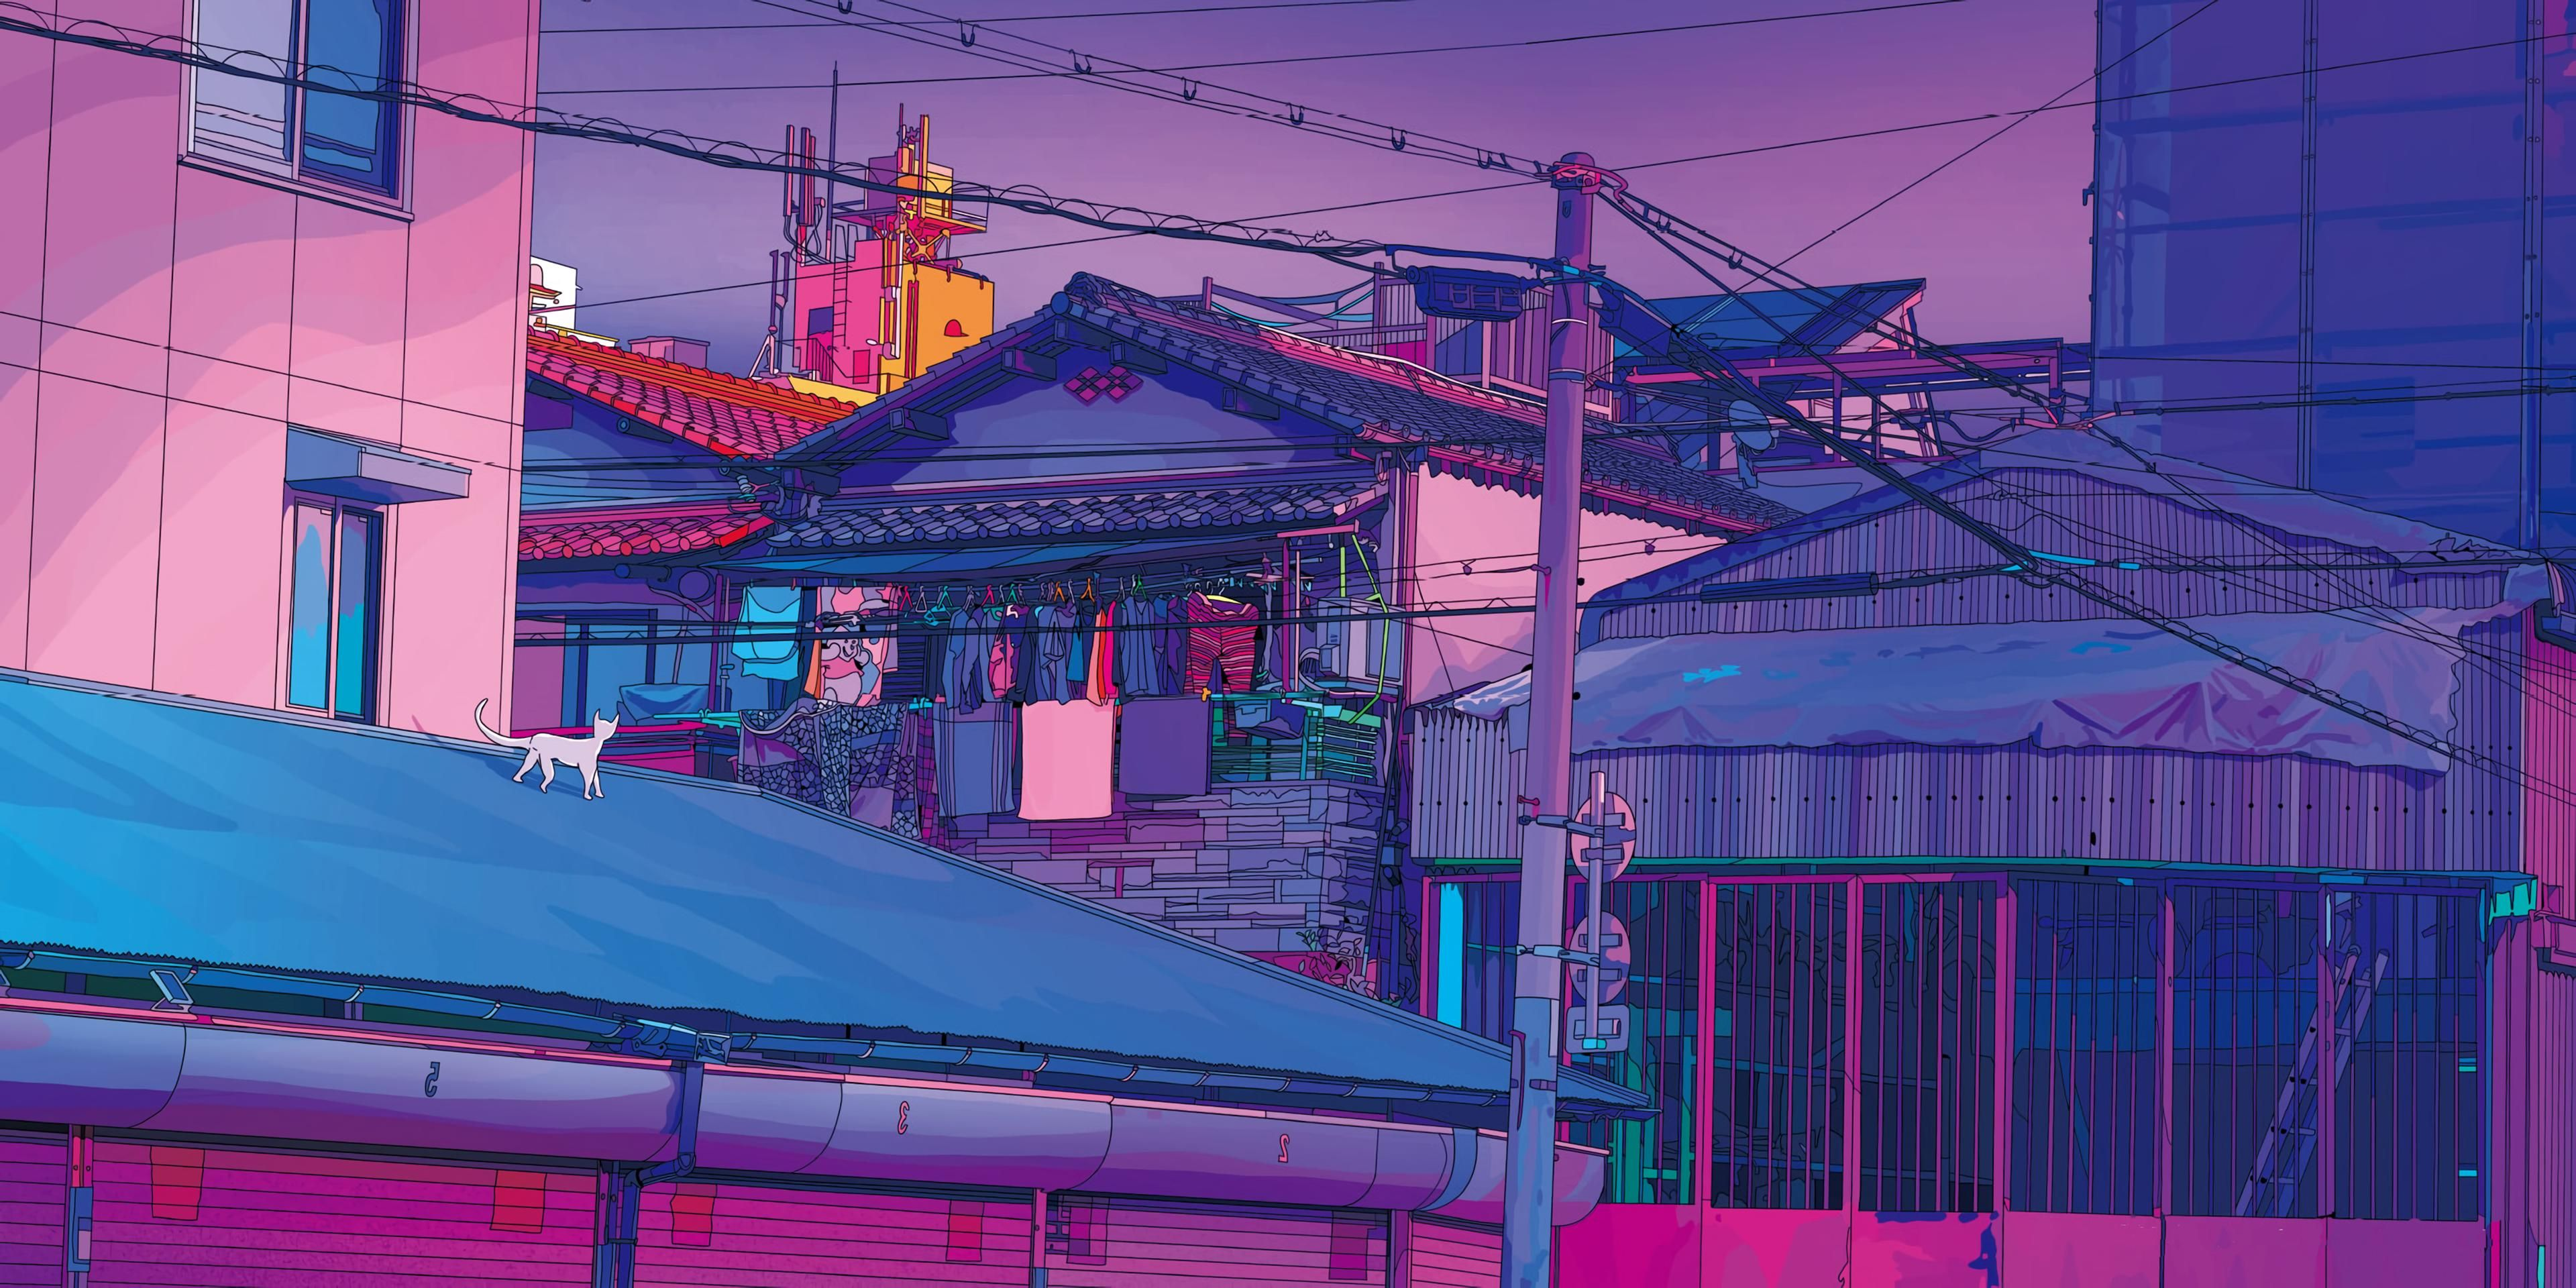 Aesthetic Tokyo (by mad.dog.jones) [3840x1920] in 2020